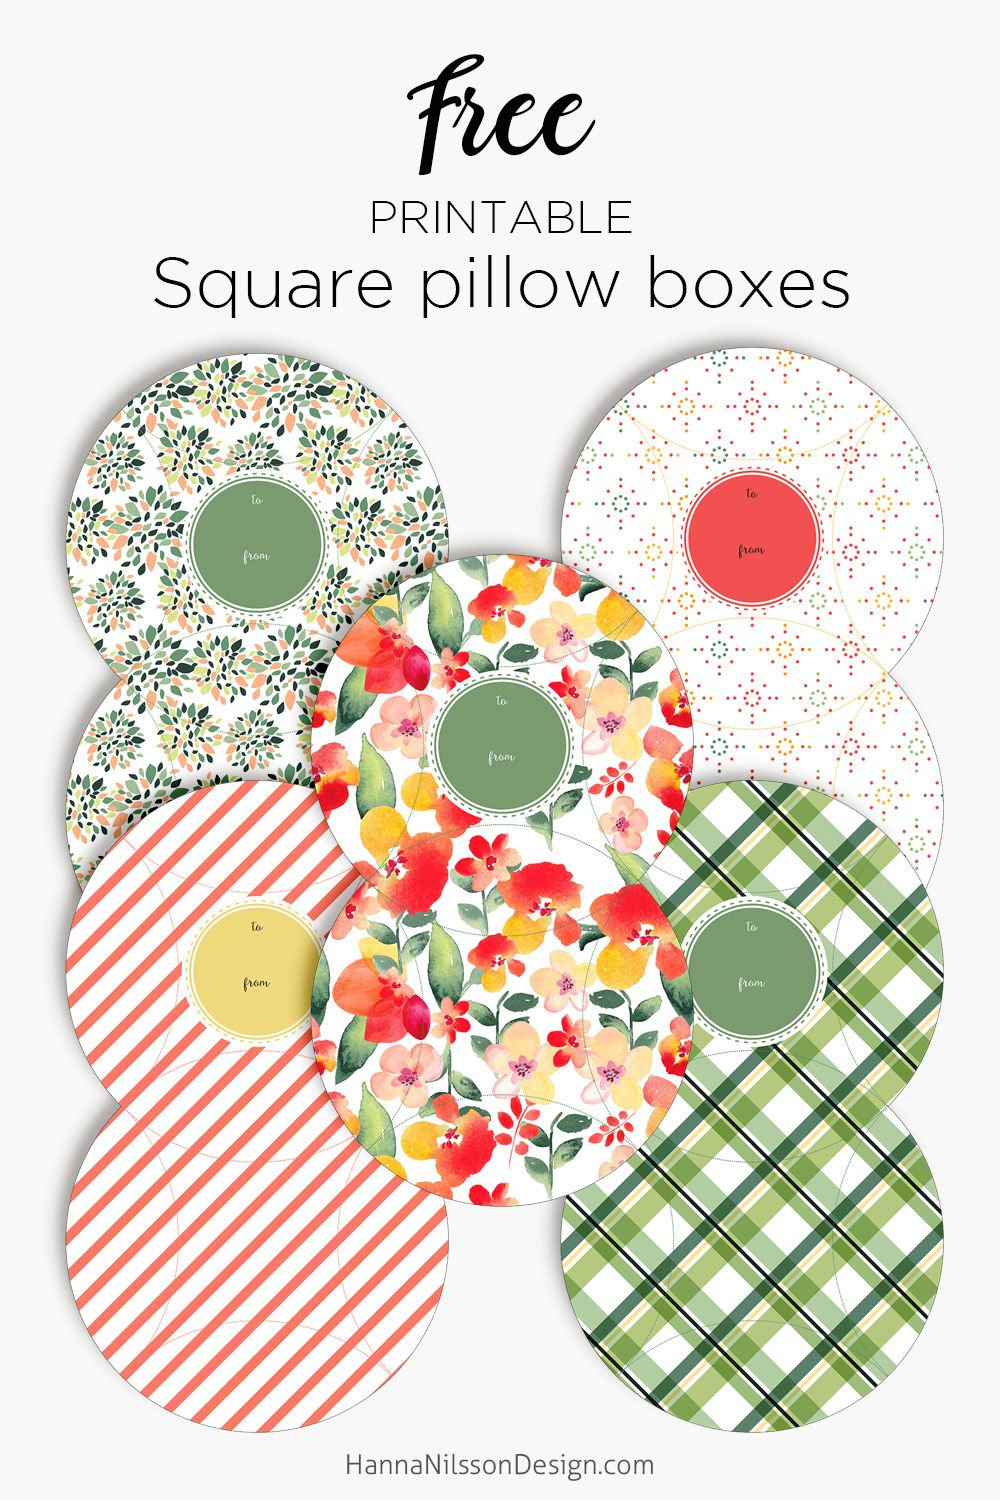 Patterned square pillow boxes printable gift boxes giftboxes